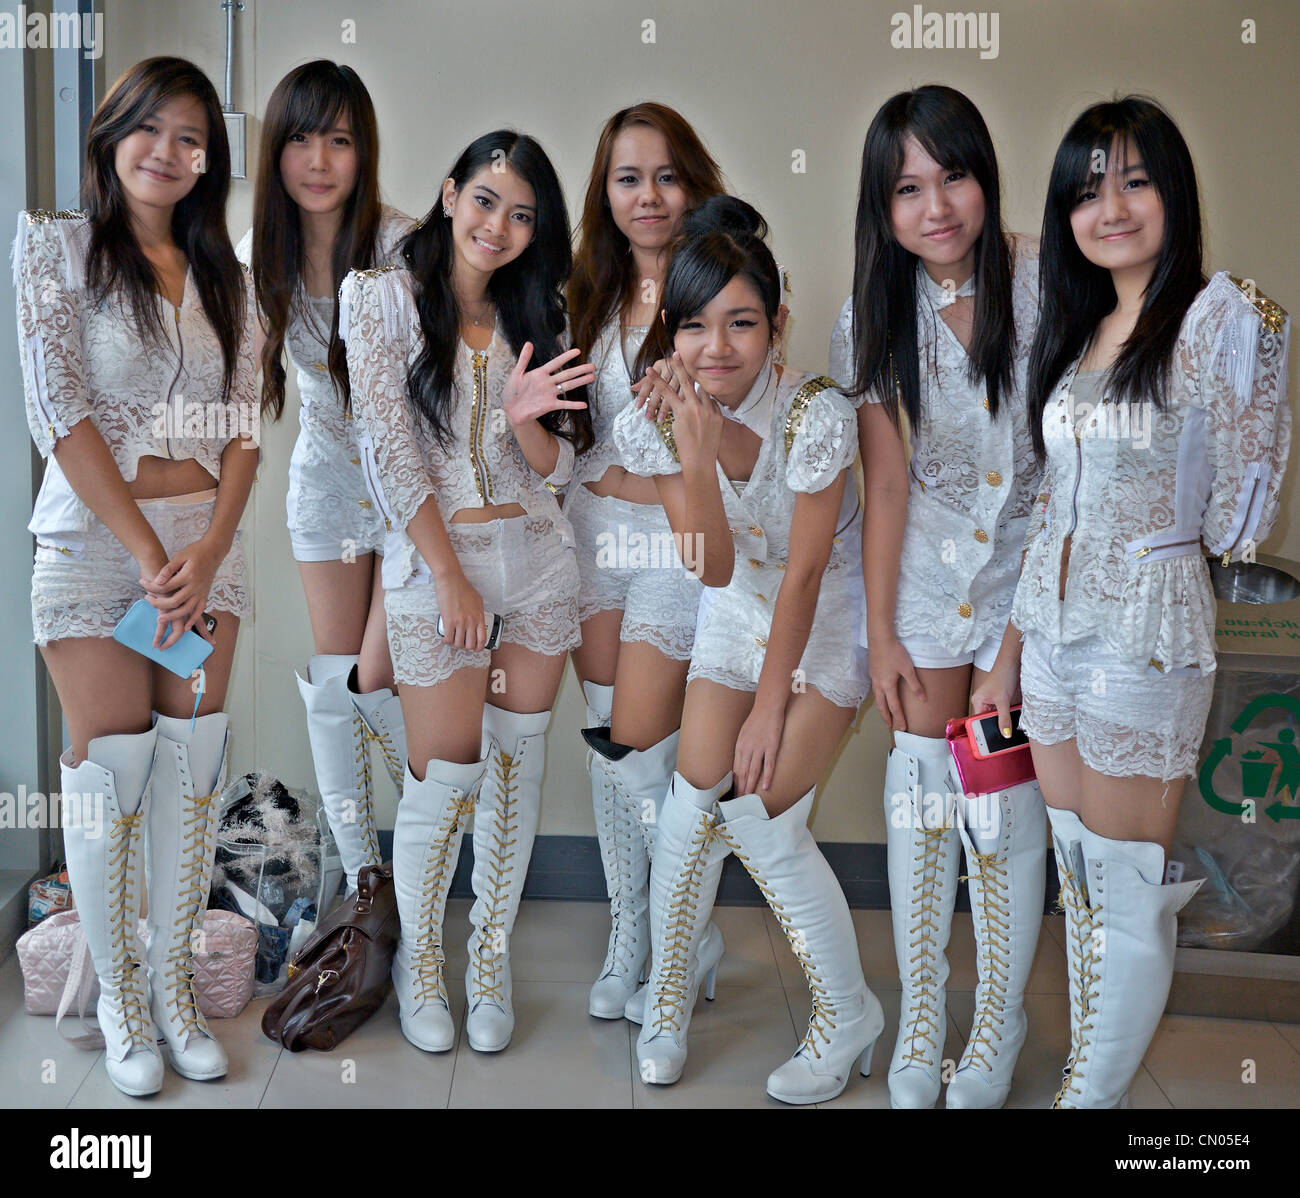 New thai teen models